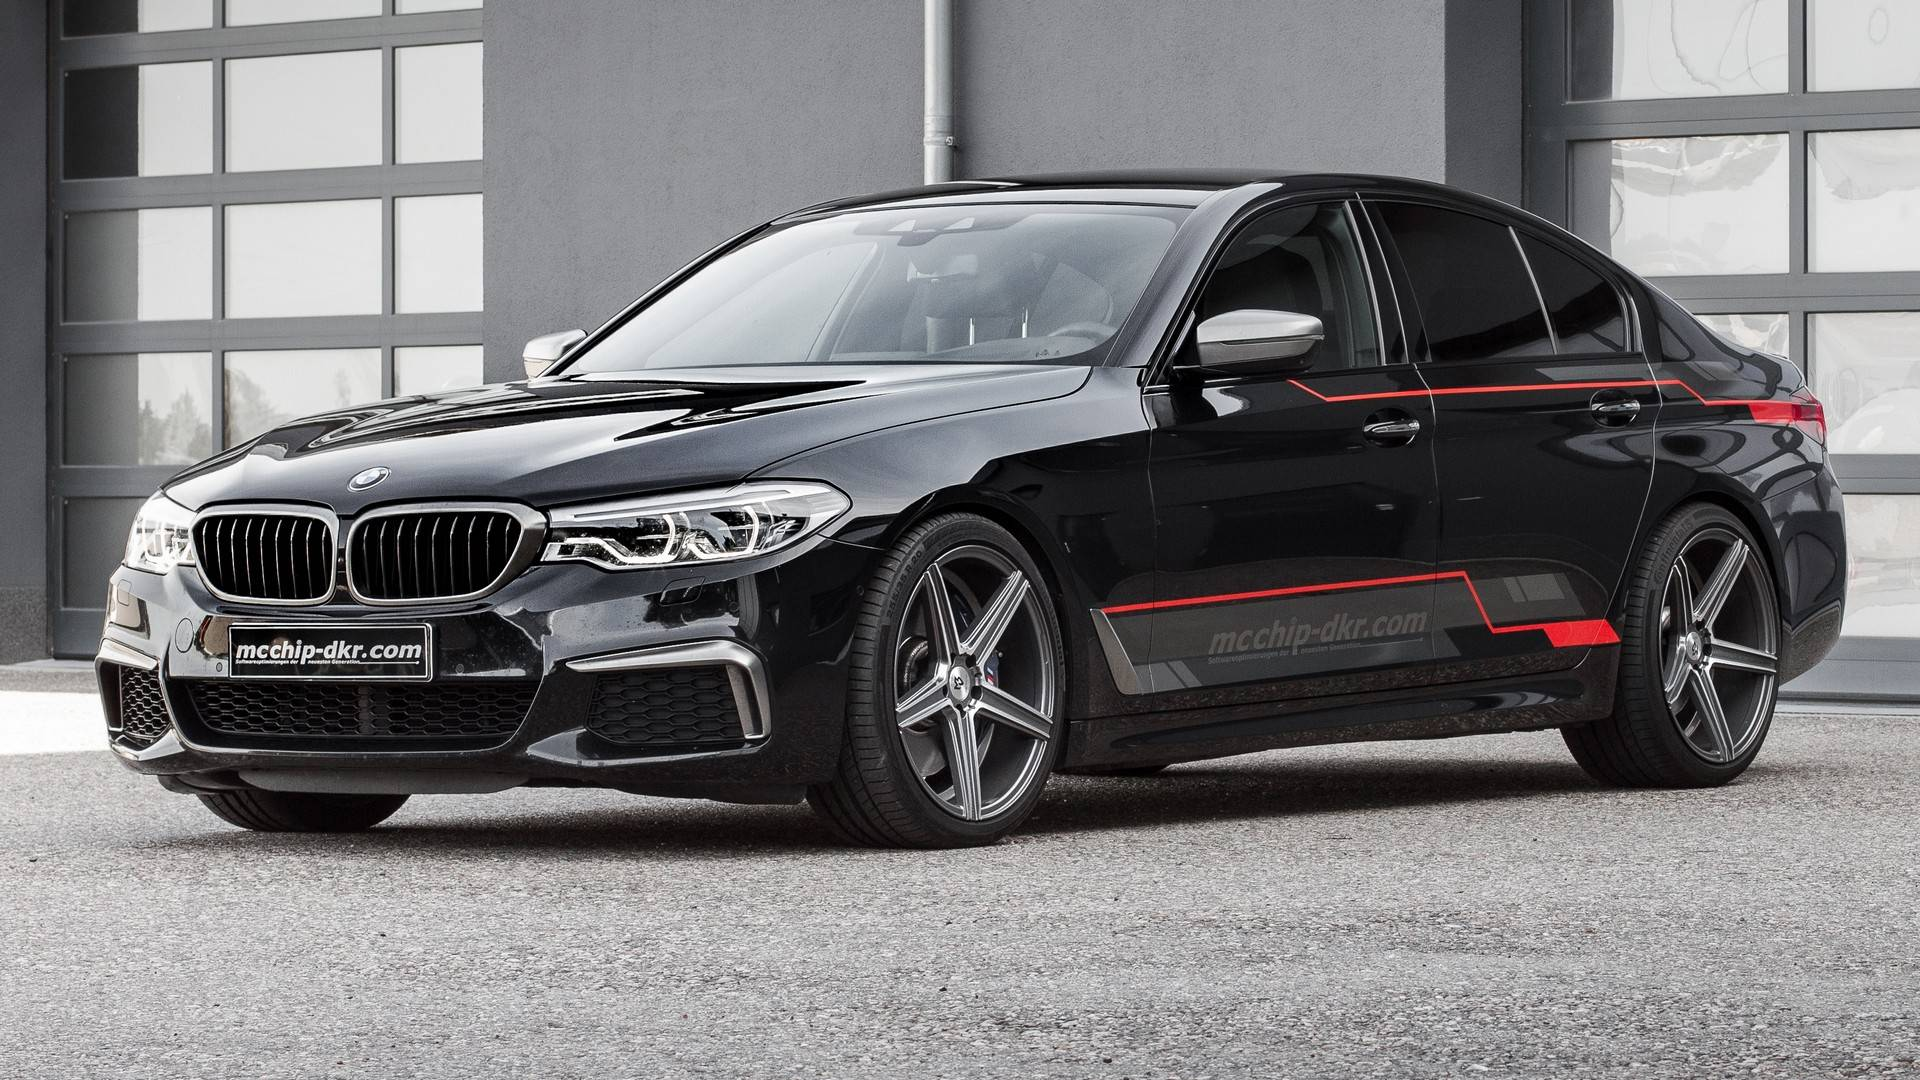 Torquey Bmw M550d Xdrive Laughs In The Face Of Anti Diesel Crowd